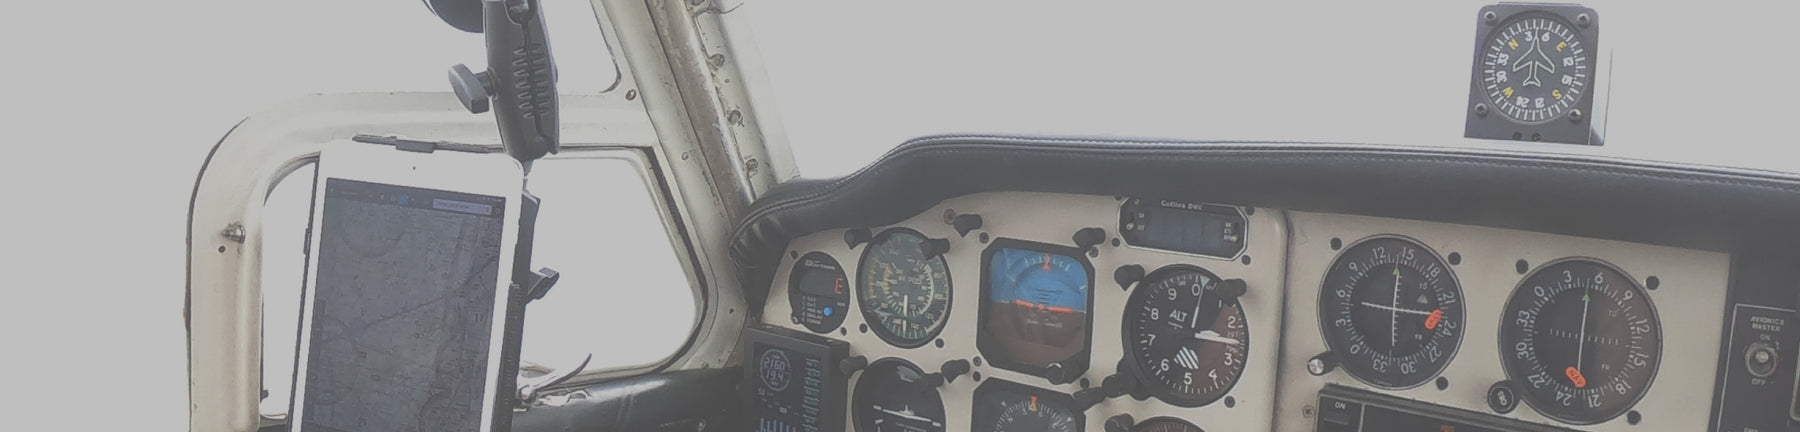 Secure your iPad in the Cockpit